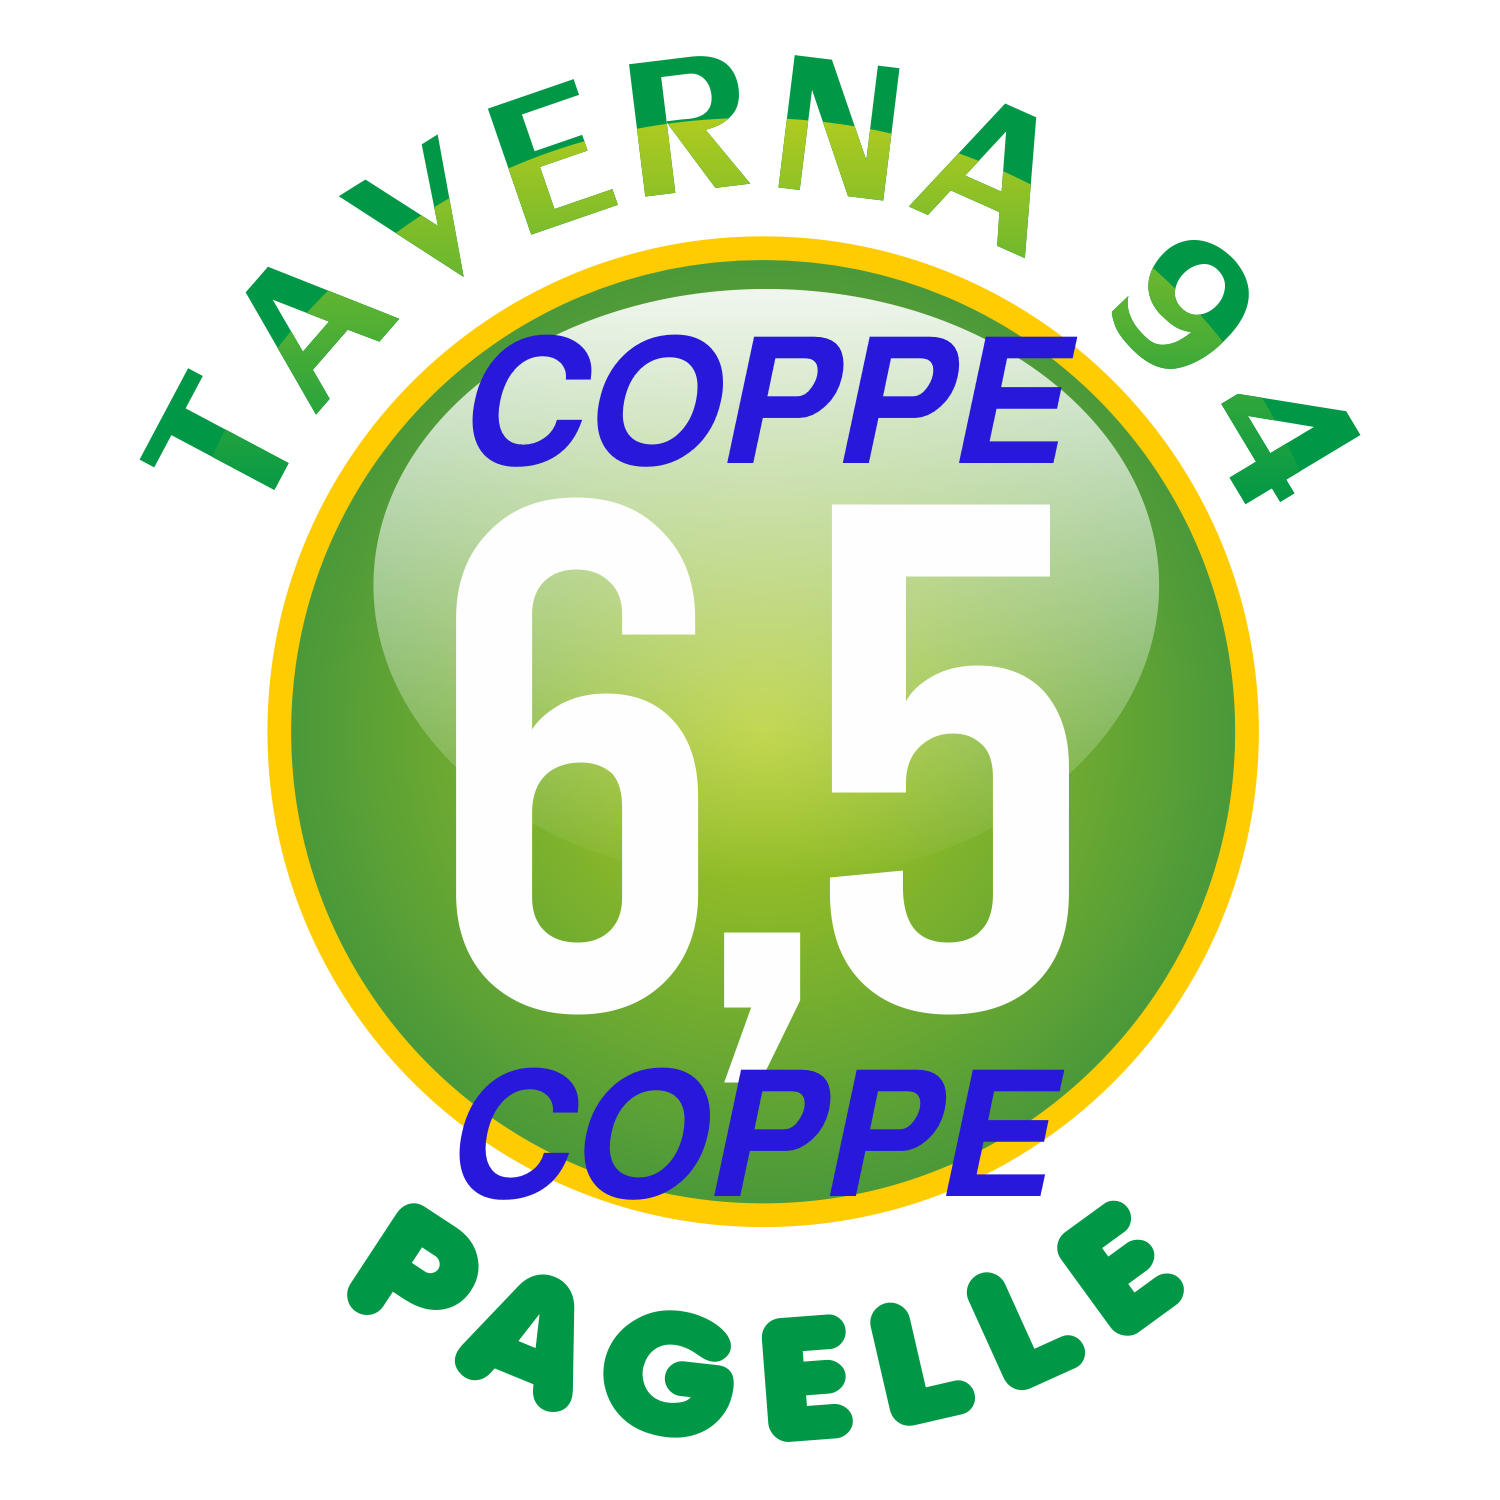 CANAPAGELLECOPPE